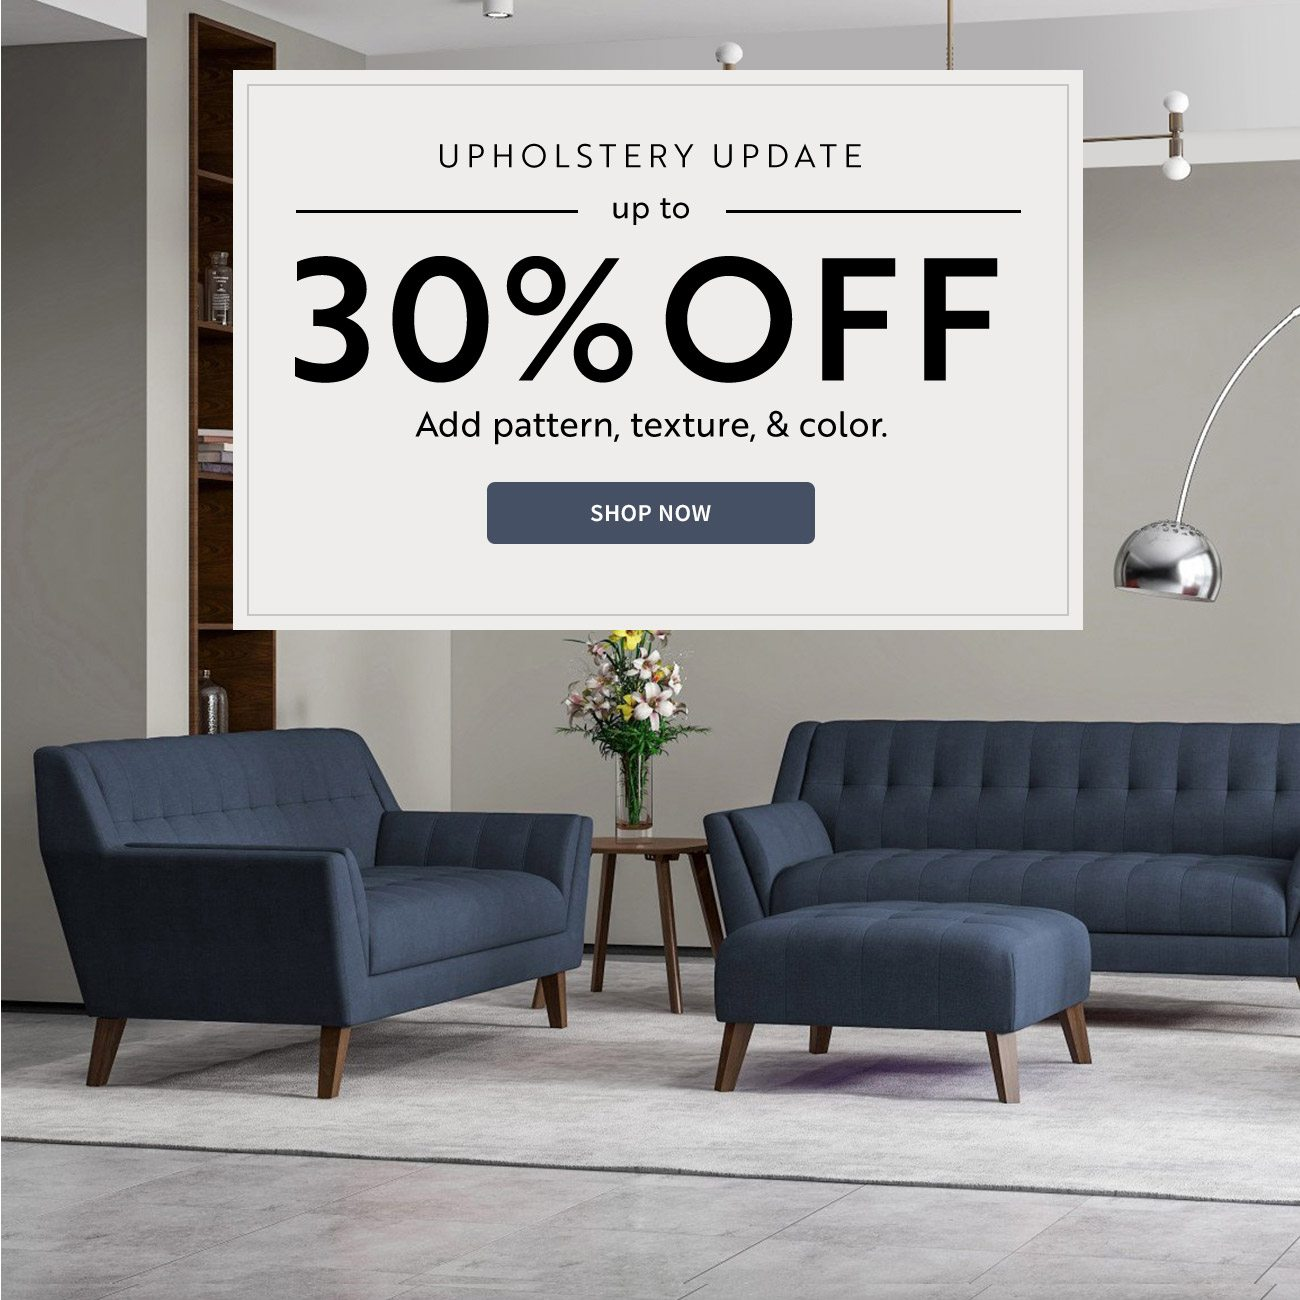 Upholstery Update   Up to 30% off patterns, textures, & color.   Shop Now